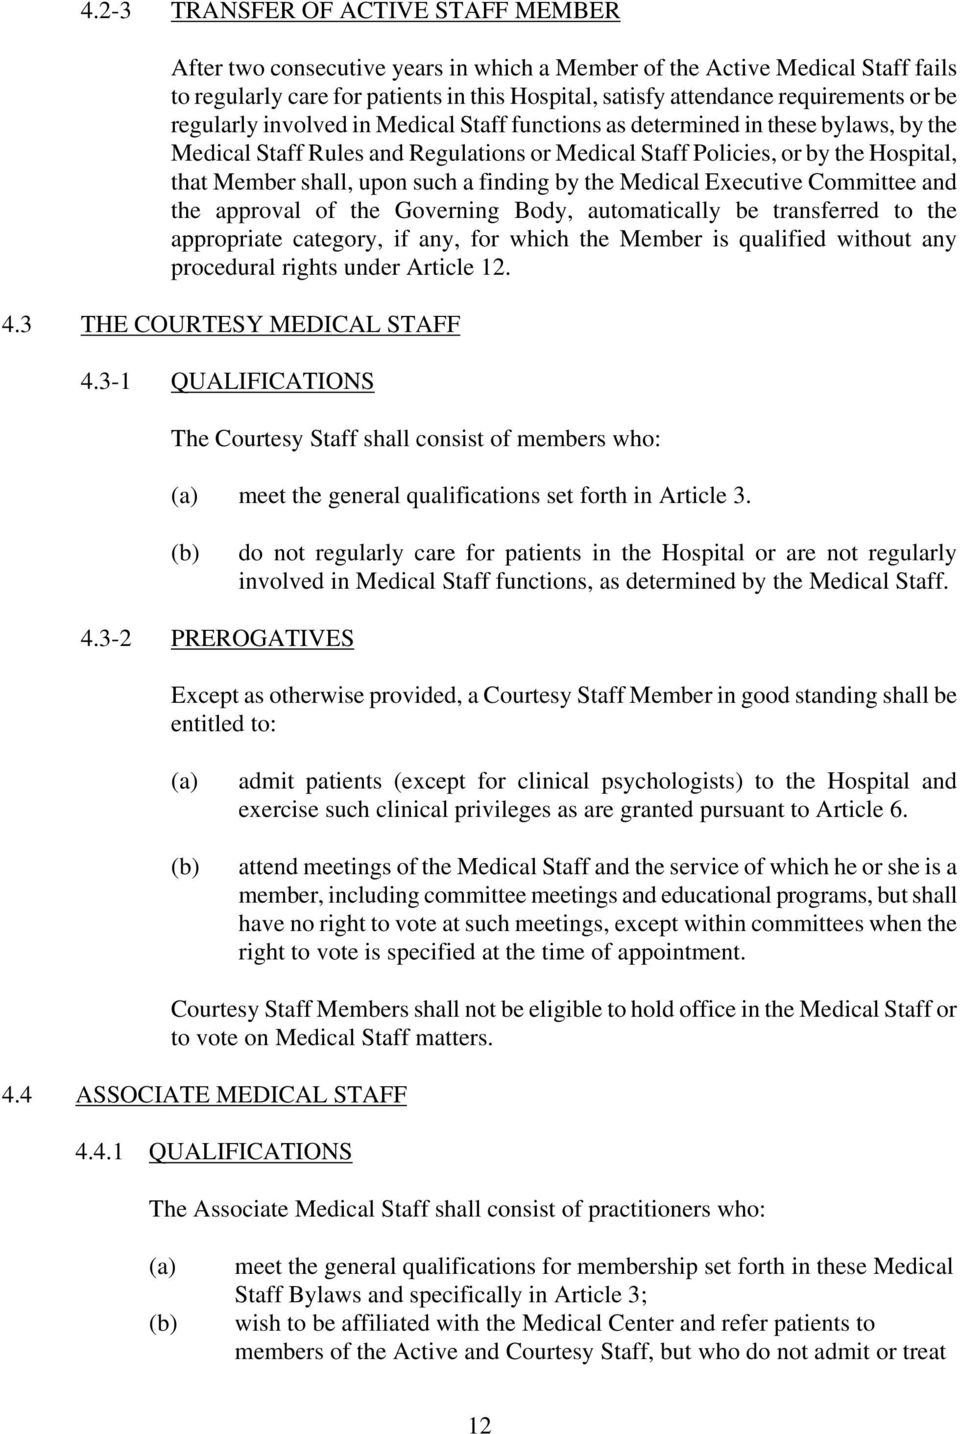 such a finding by the Medical Executive Committee and the approval of the Governing Body, automatically be transferred to the appropriate category, if any, for which the Member is qualified without